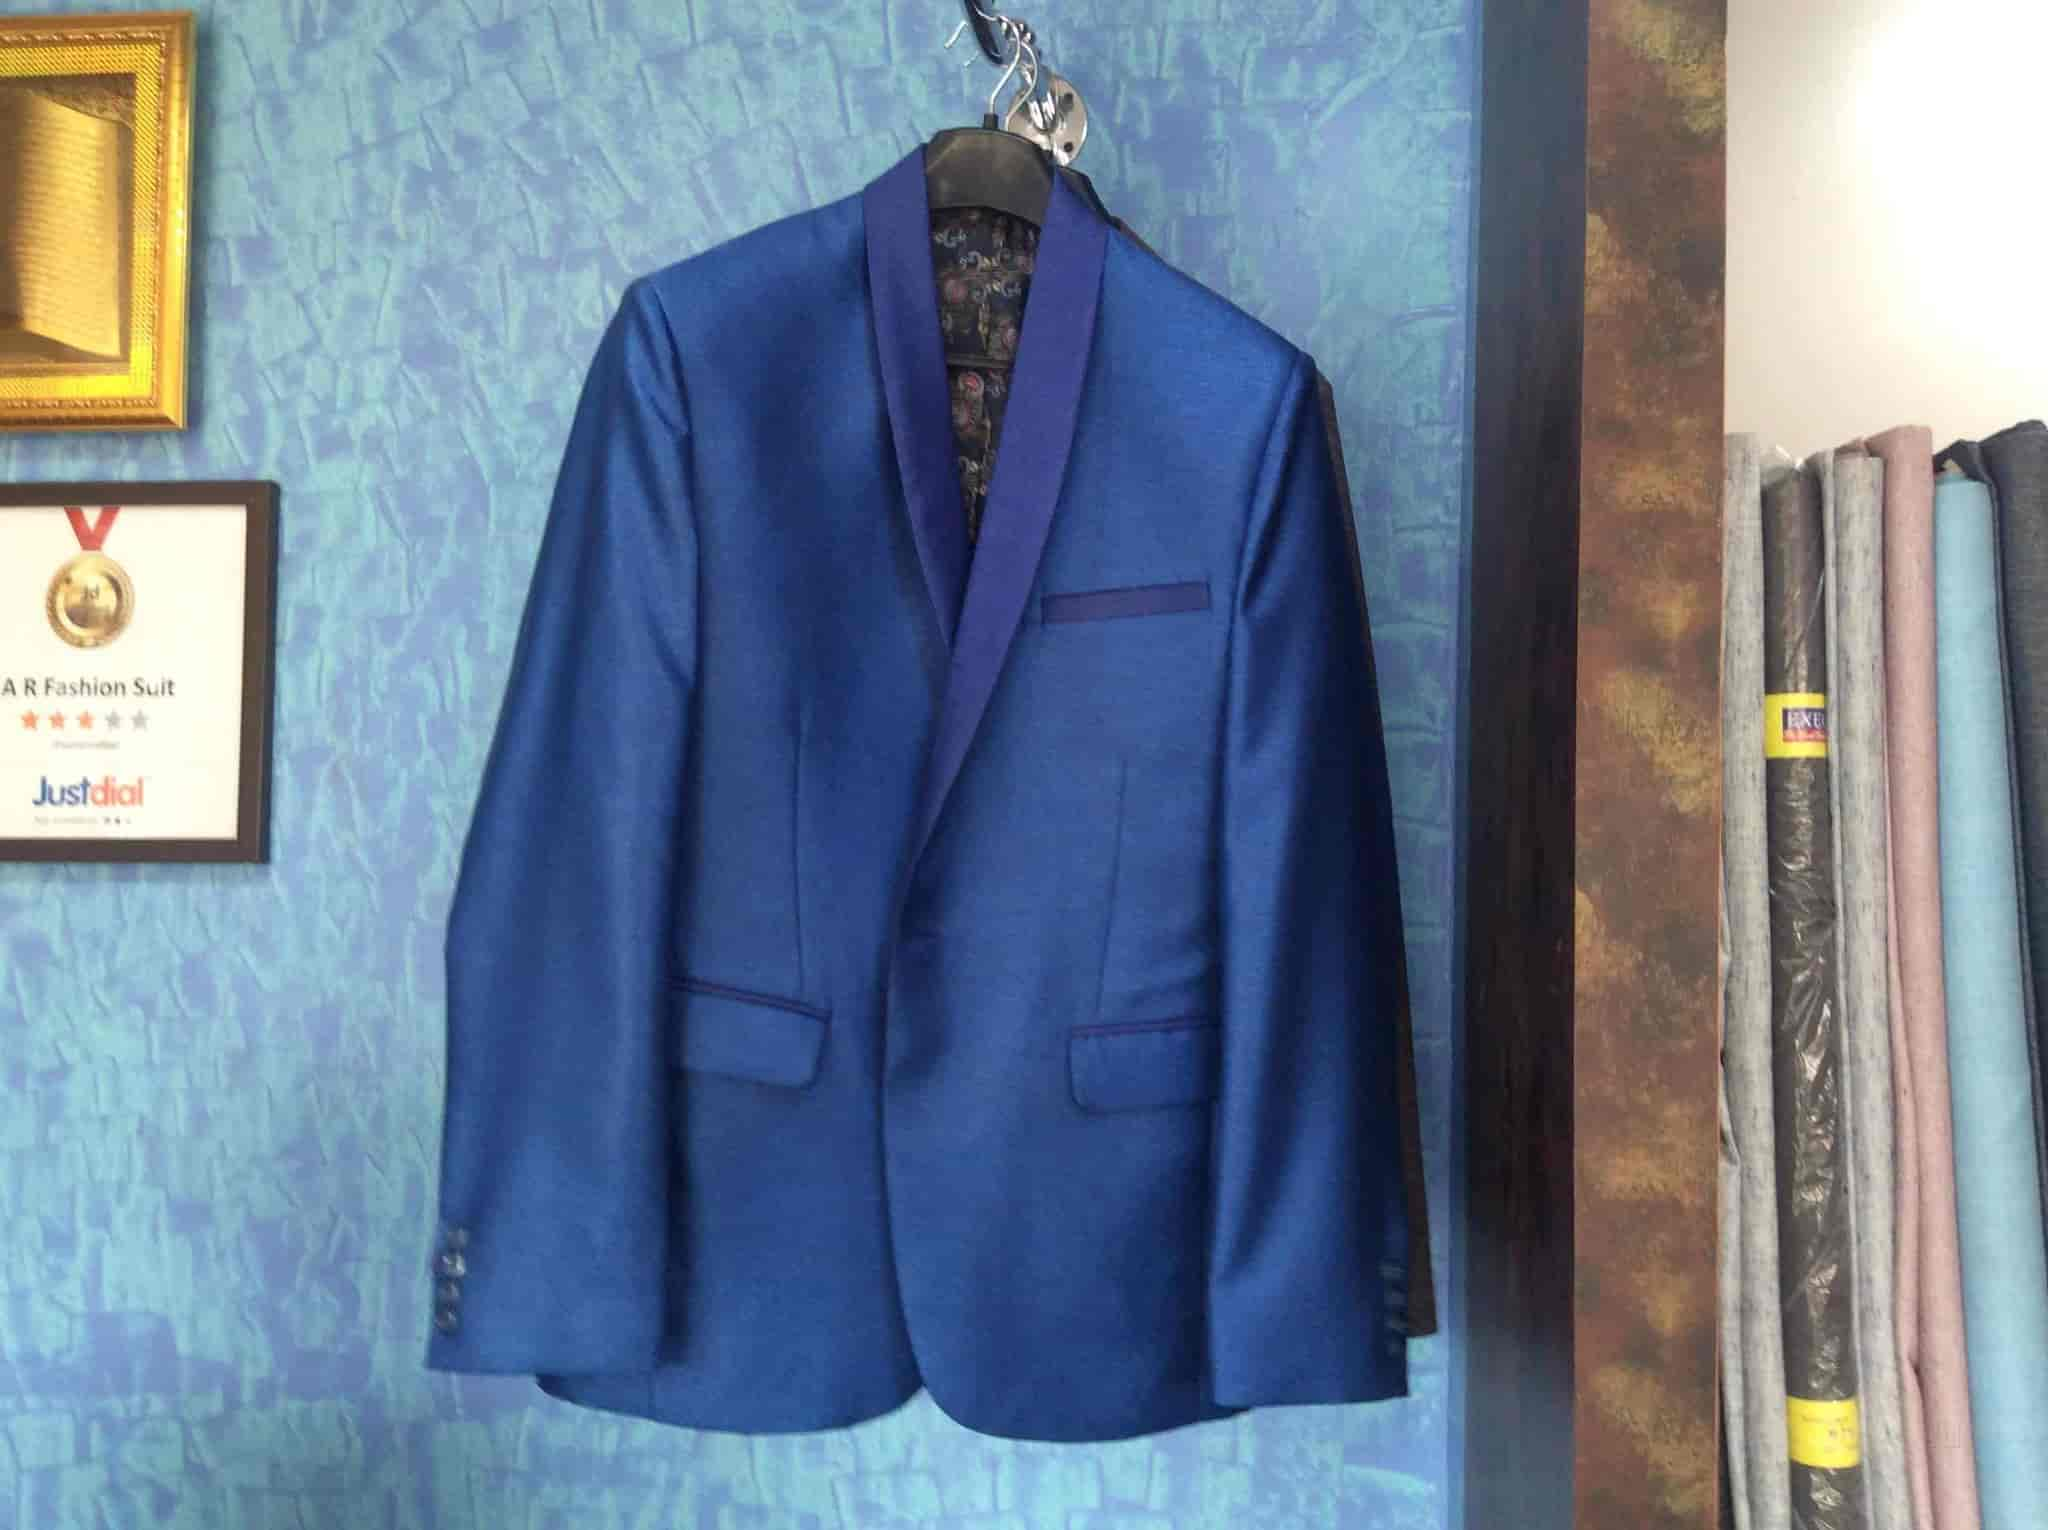 A R Fashion Suit, Poonamallee - Tailors in Chennai - Justdial